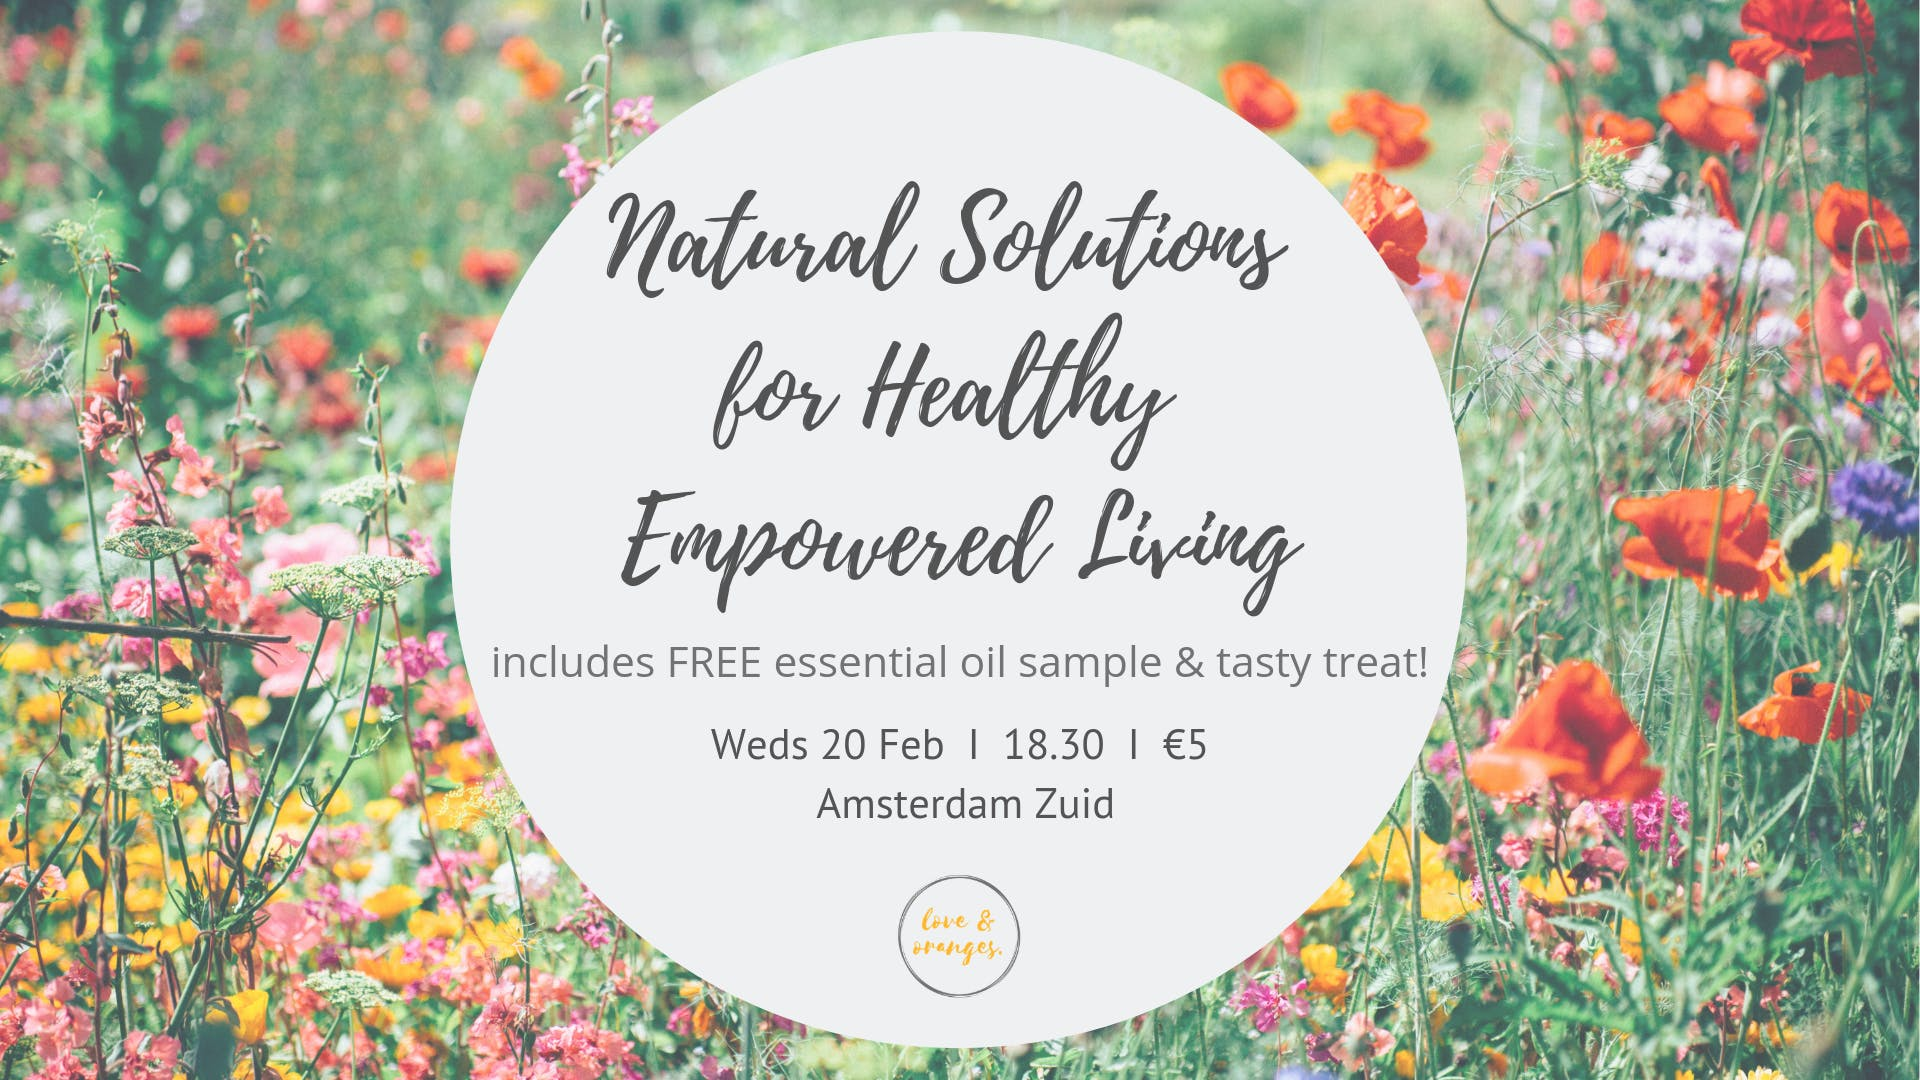 Natural Solutions for Healthy Empowered Livin